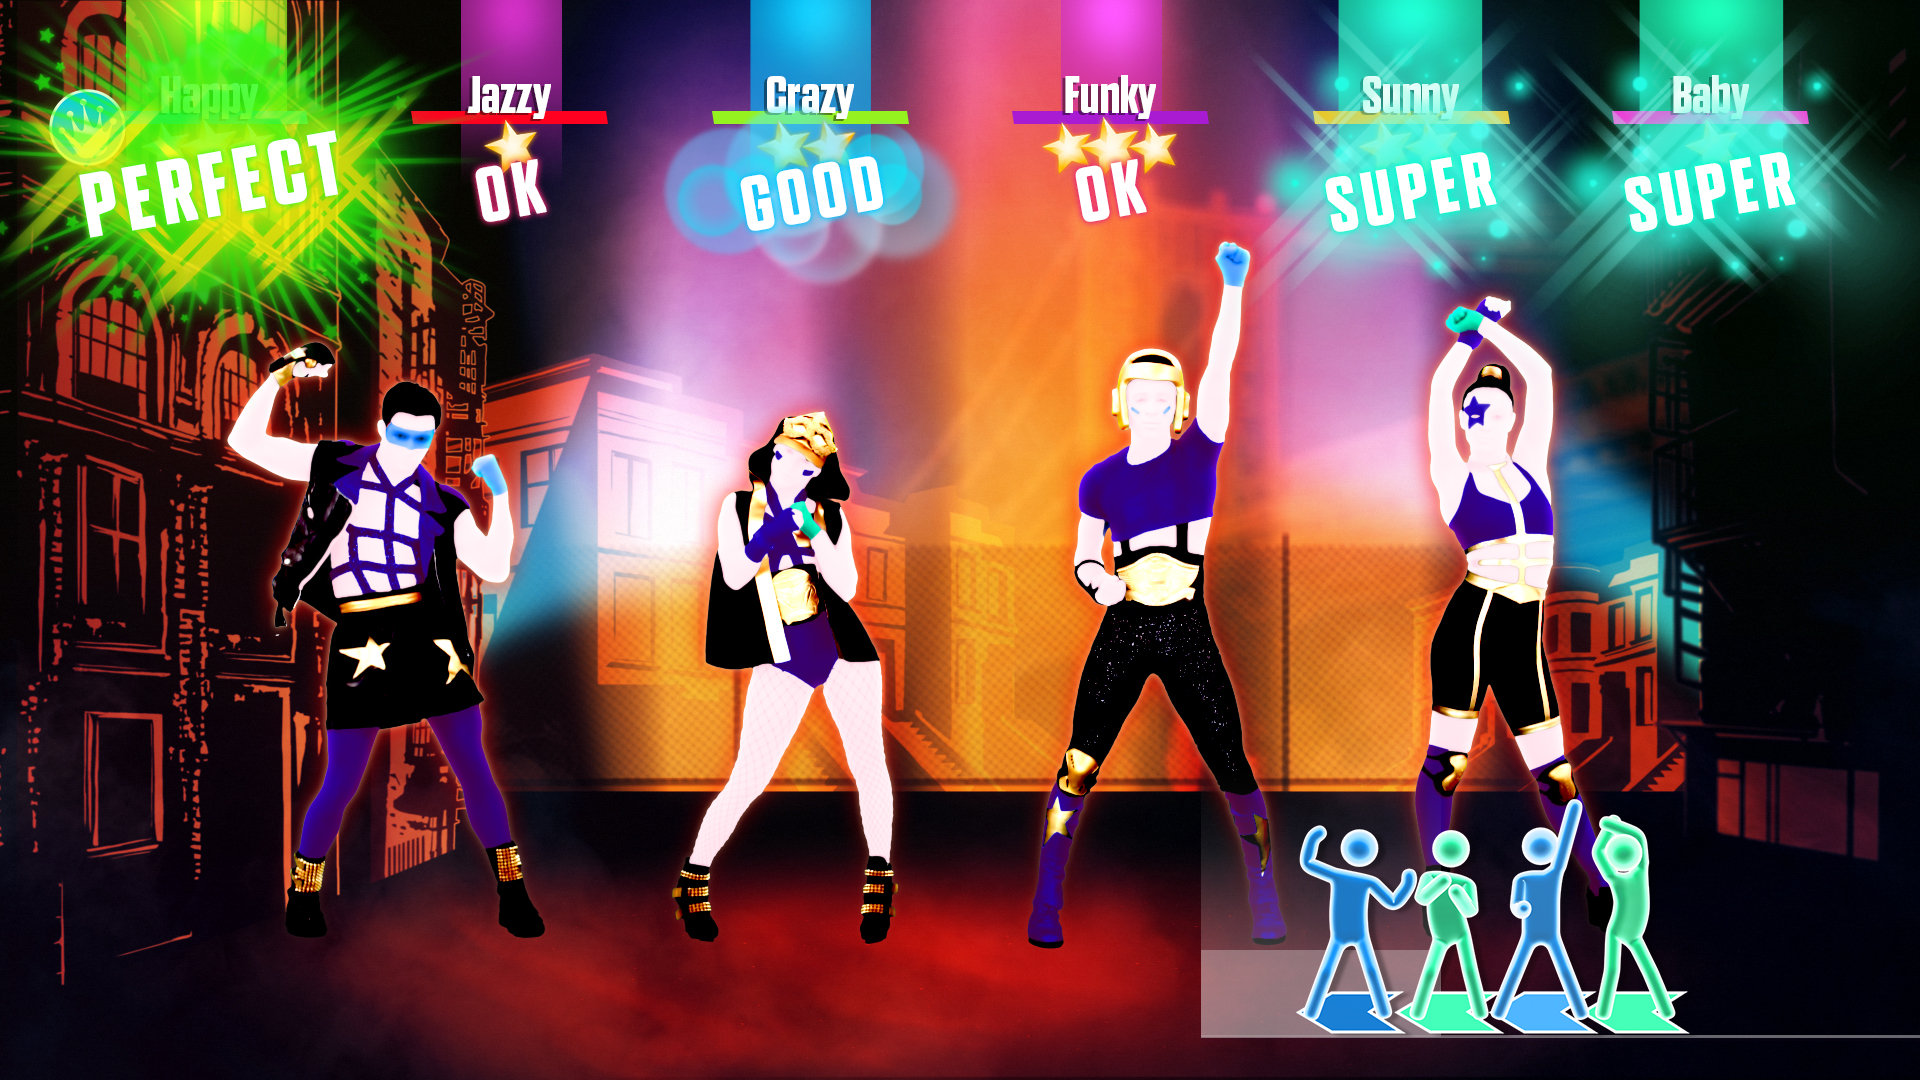 How the Just Dance Video Game Can Be Used for Weight Loss